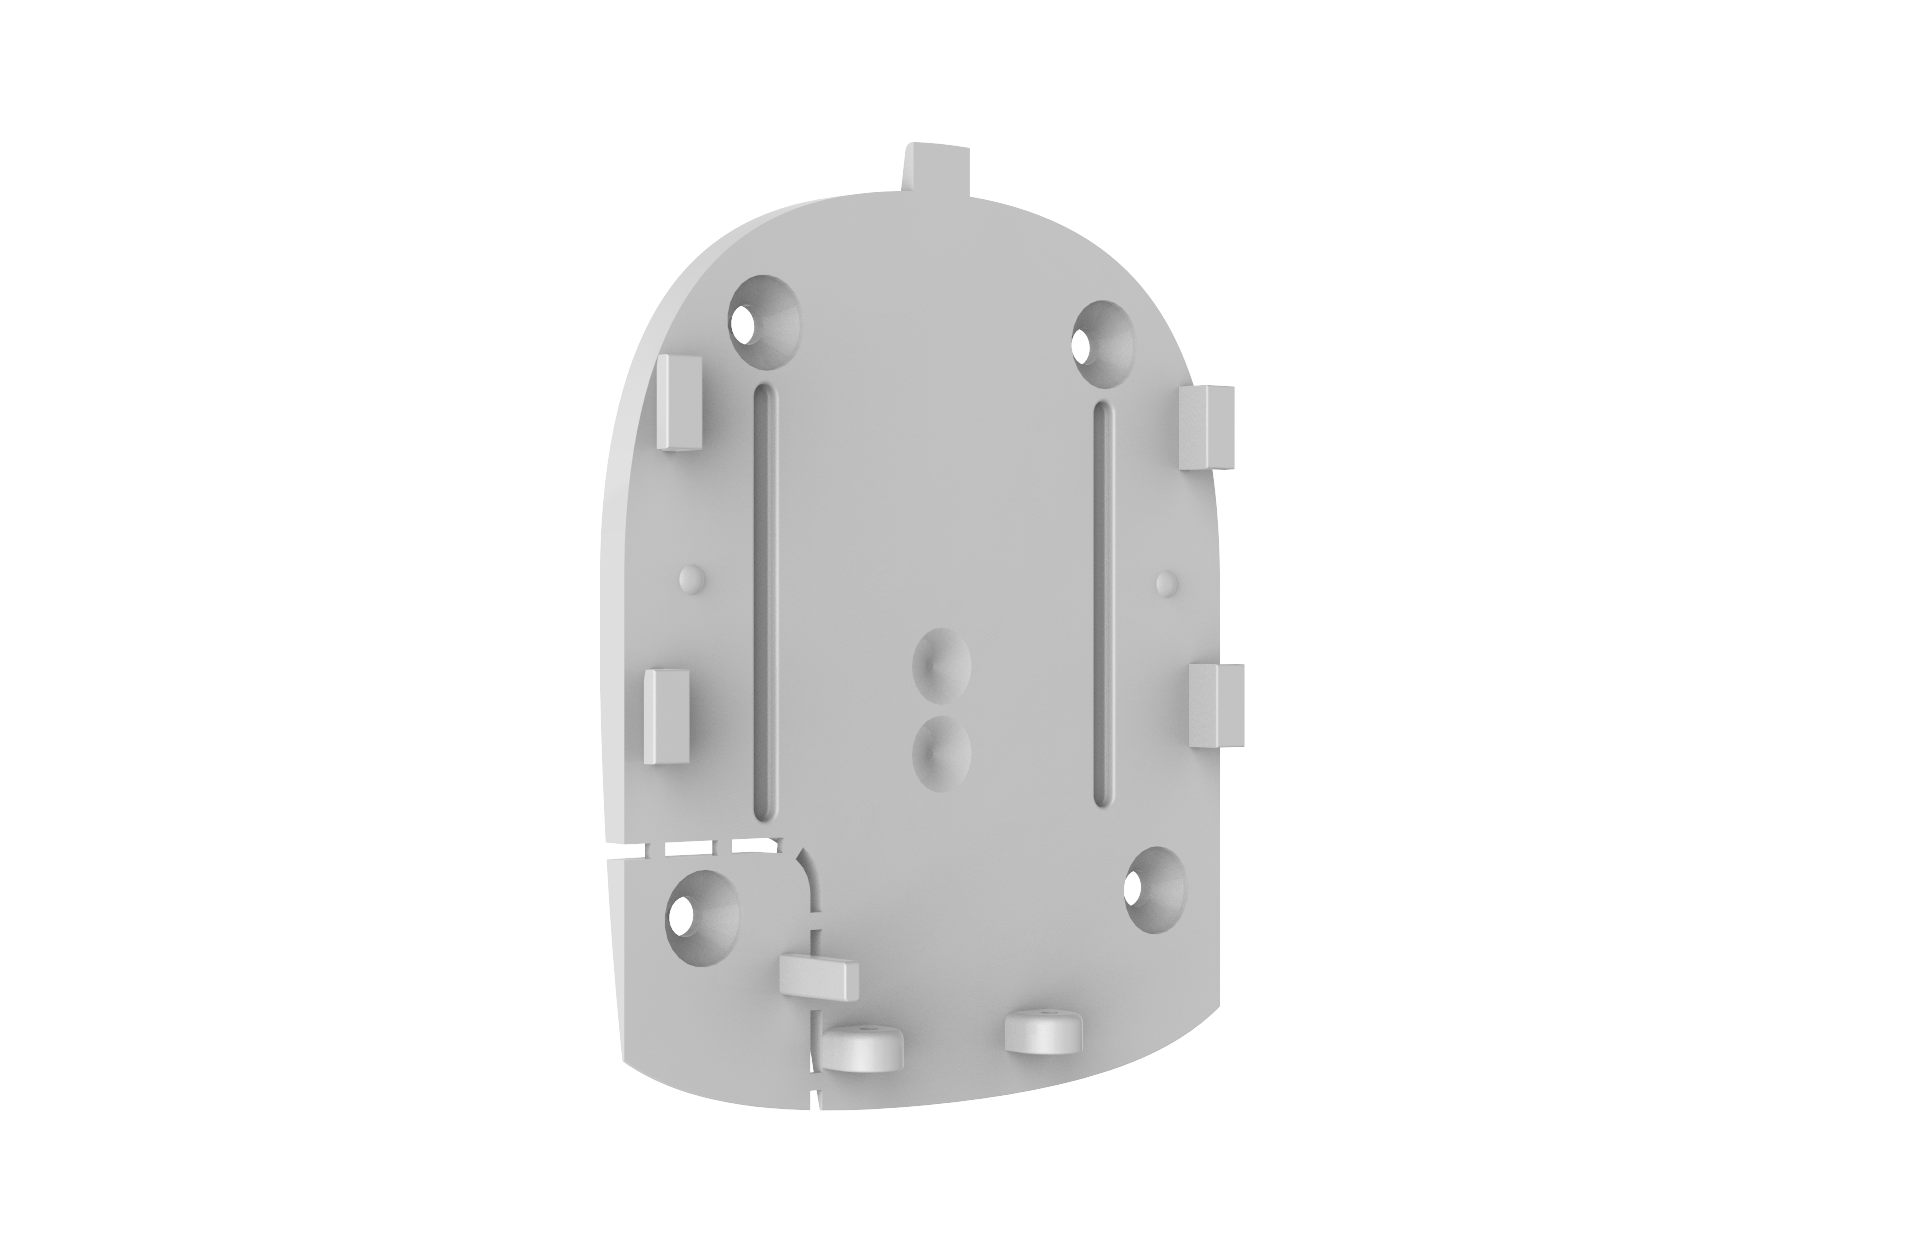 Smartbracket Ajax Hub white